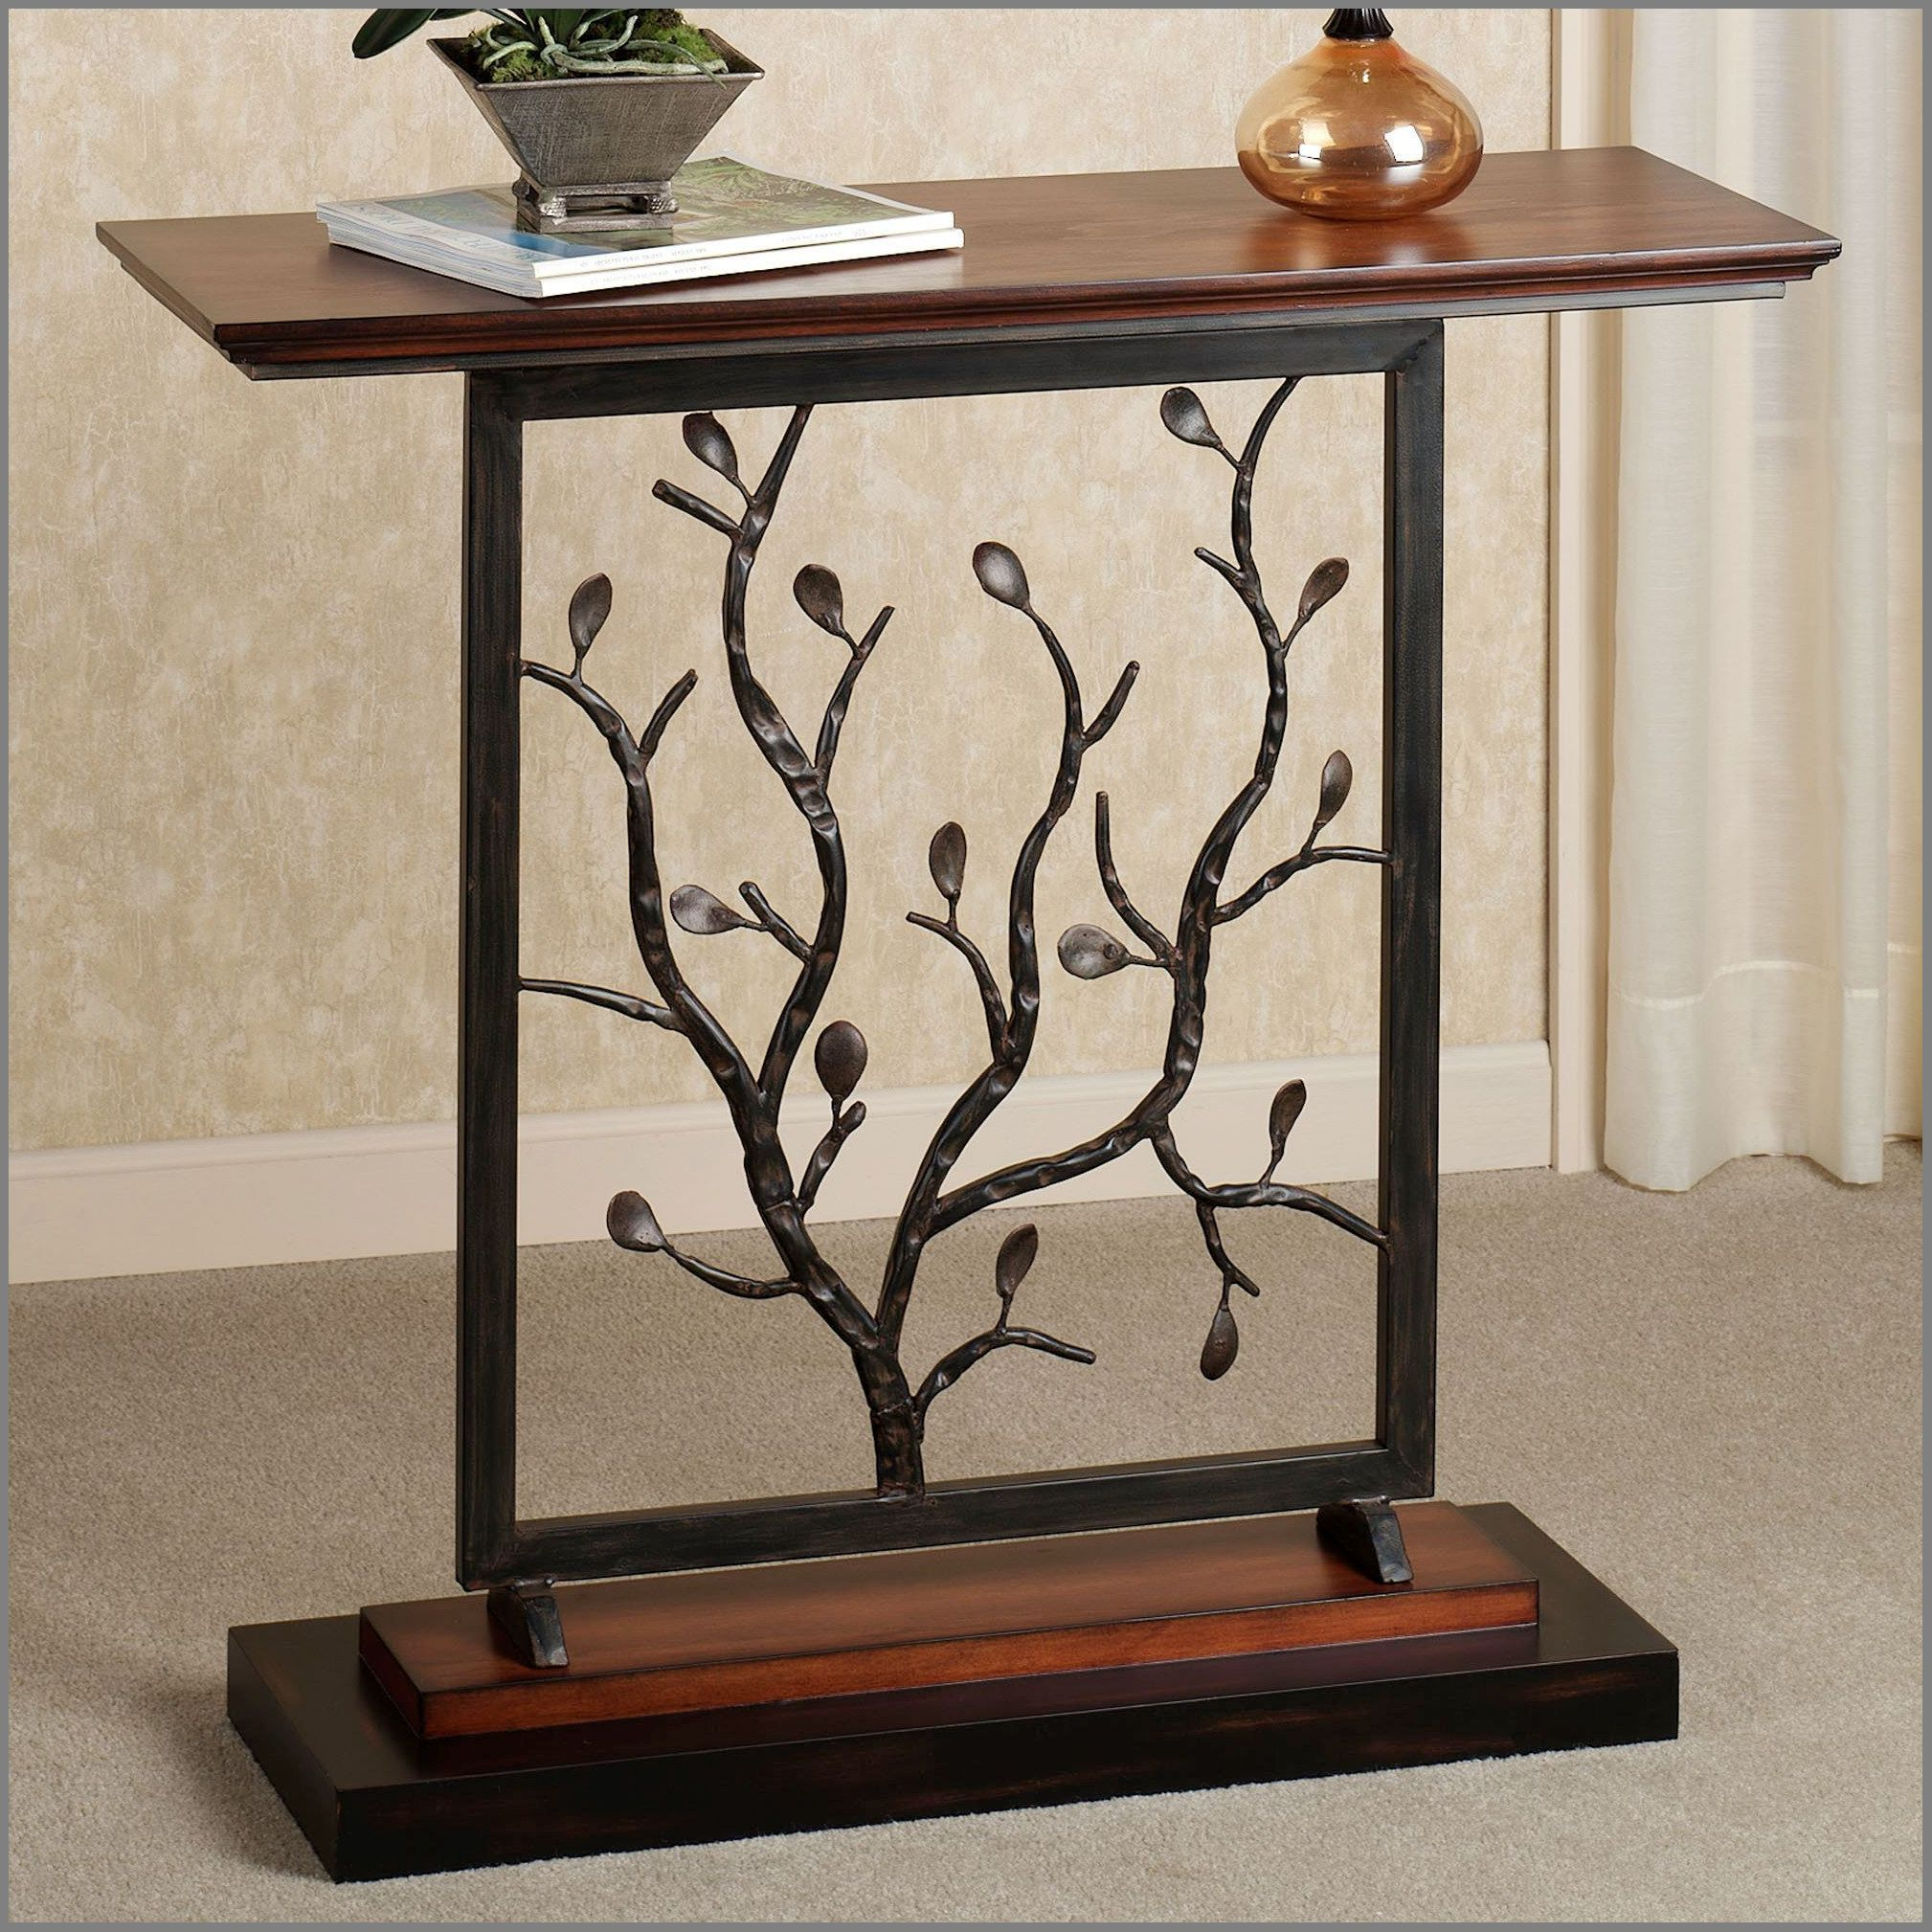 accent table decor decorating ideas victoria homes design wonderfull small decorative tables northern states basement systems walk out round entryway large metal coffee bedroom